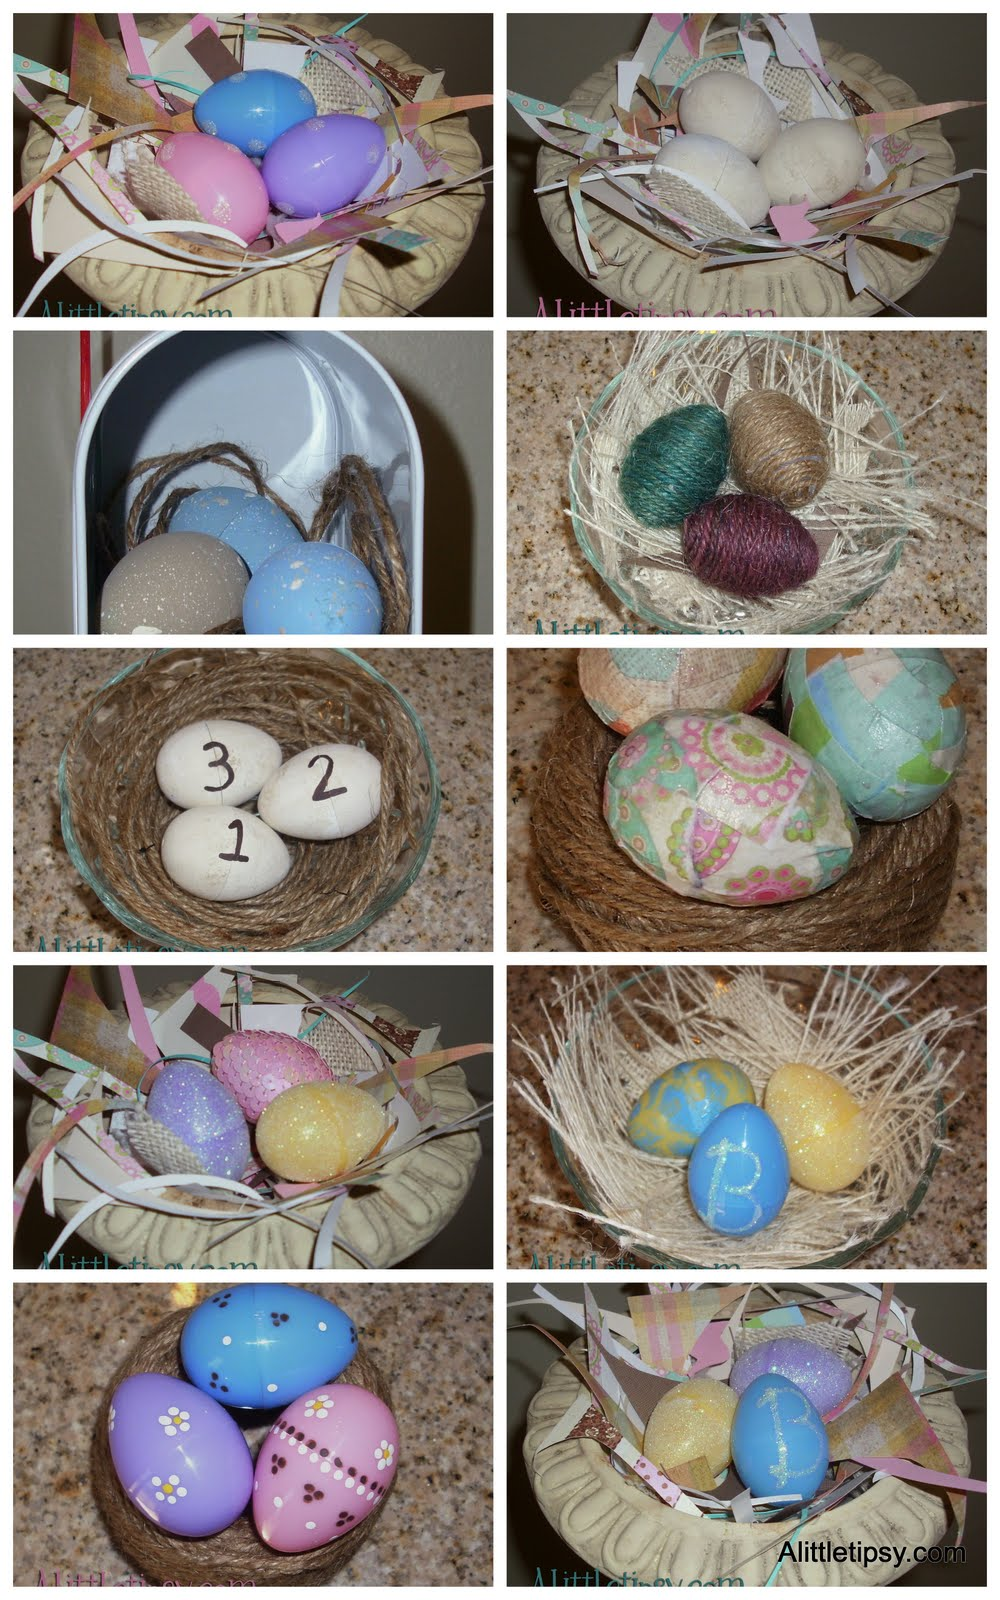 11 Ways To Decorate Plastic Easter Eggs